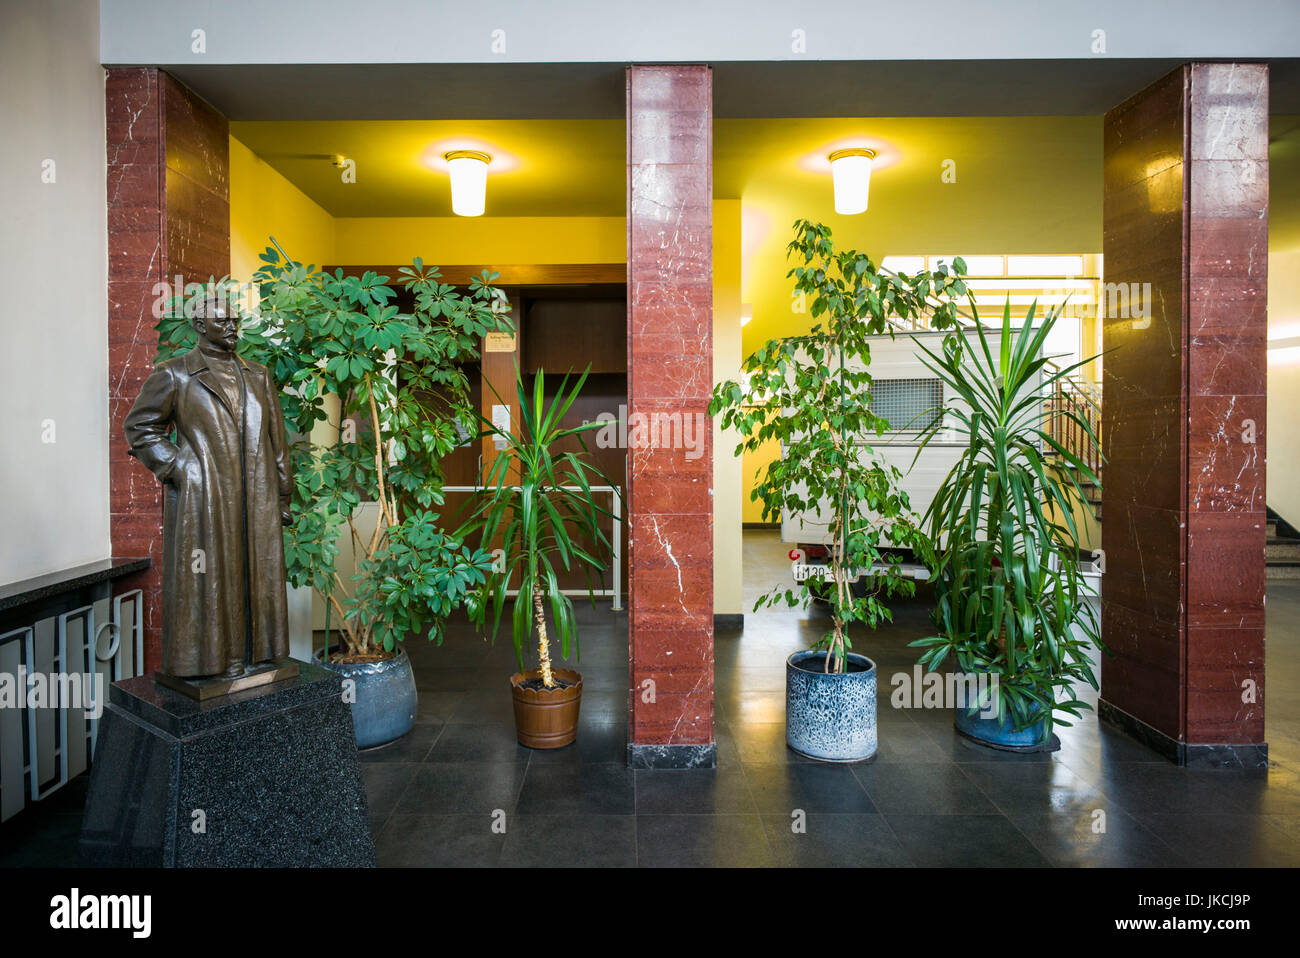 Germany, Berlin, Friendrichshain, Stasi Museum, DDR-era secret police museum in former secret police headquarters, - Stock Image